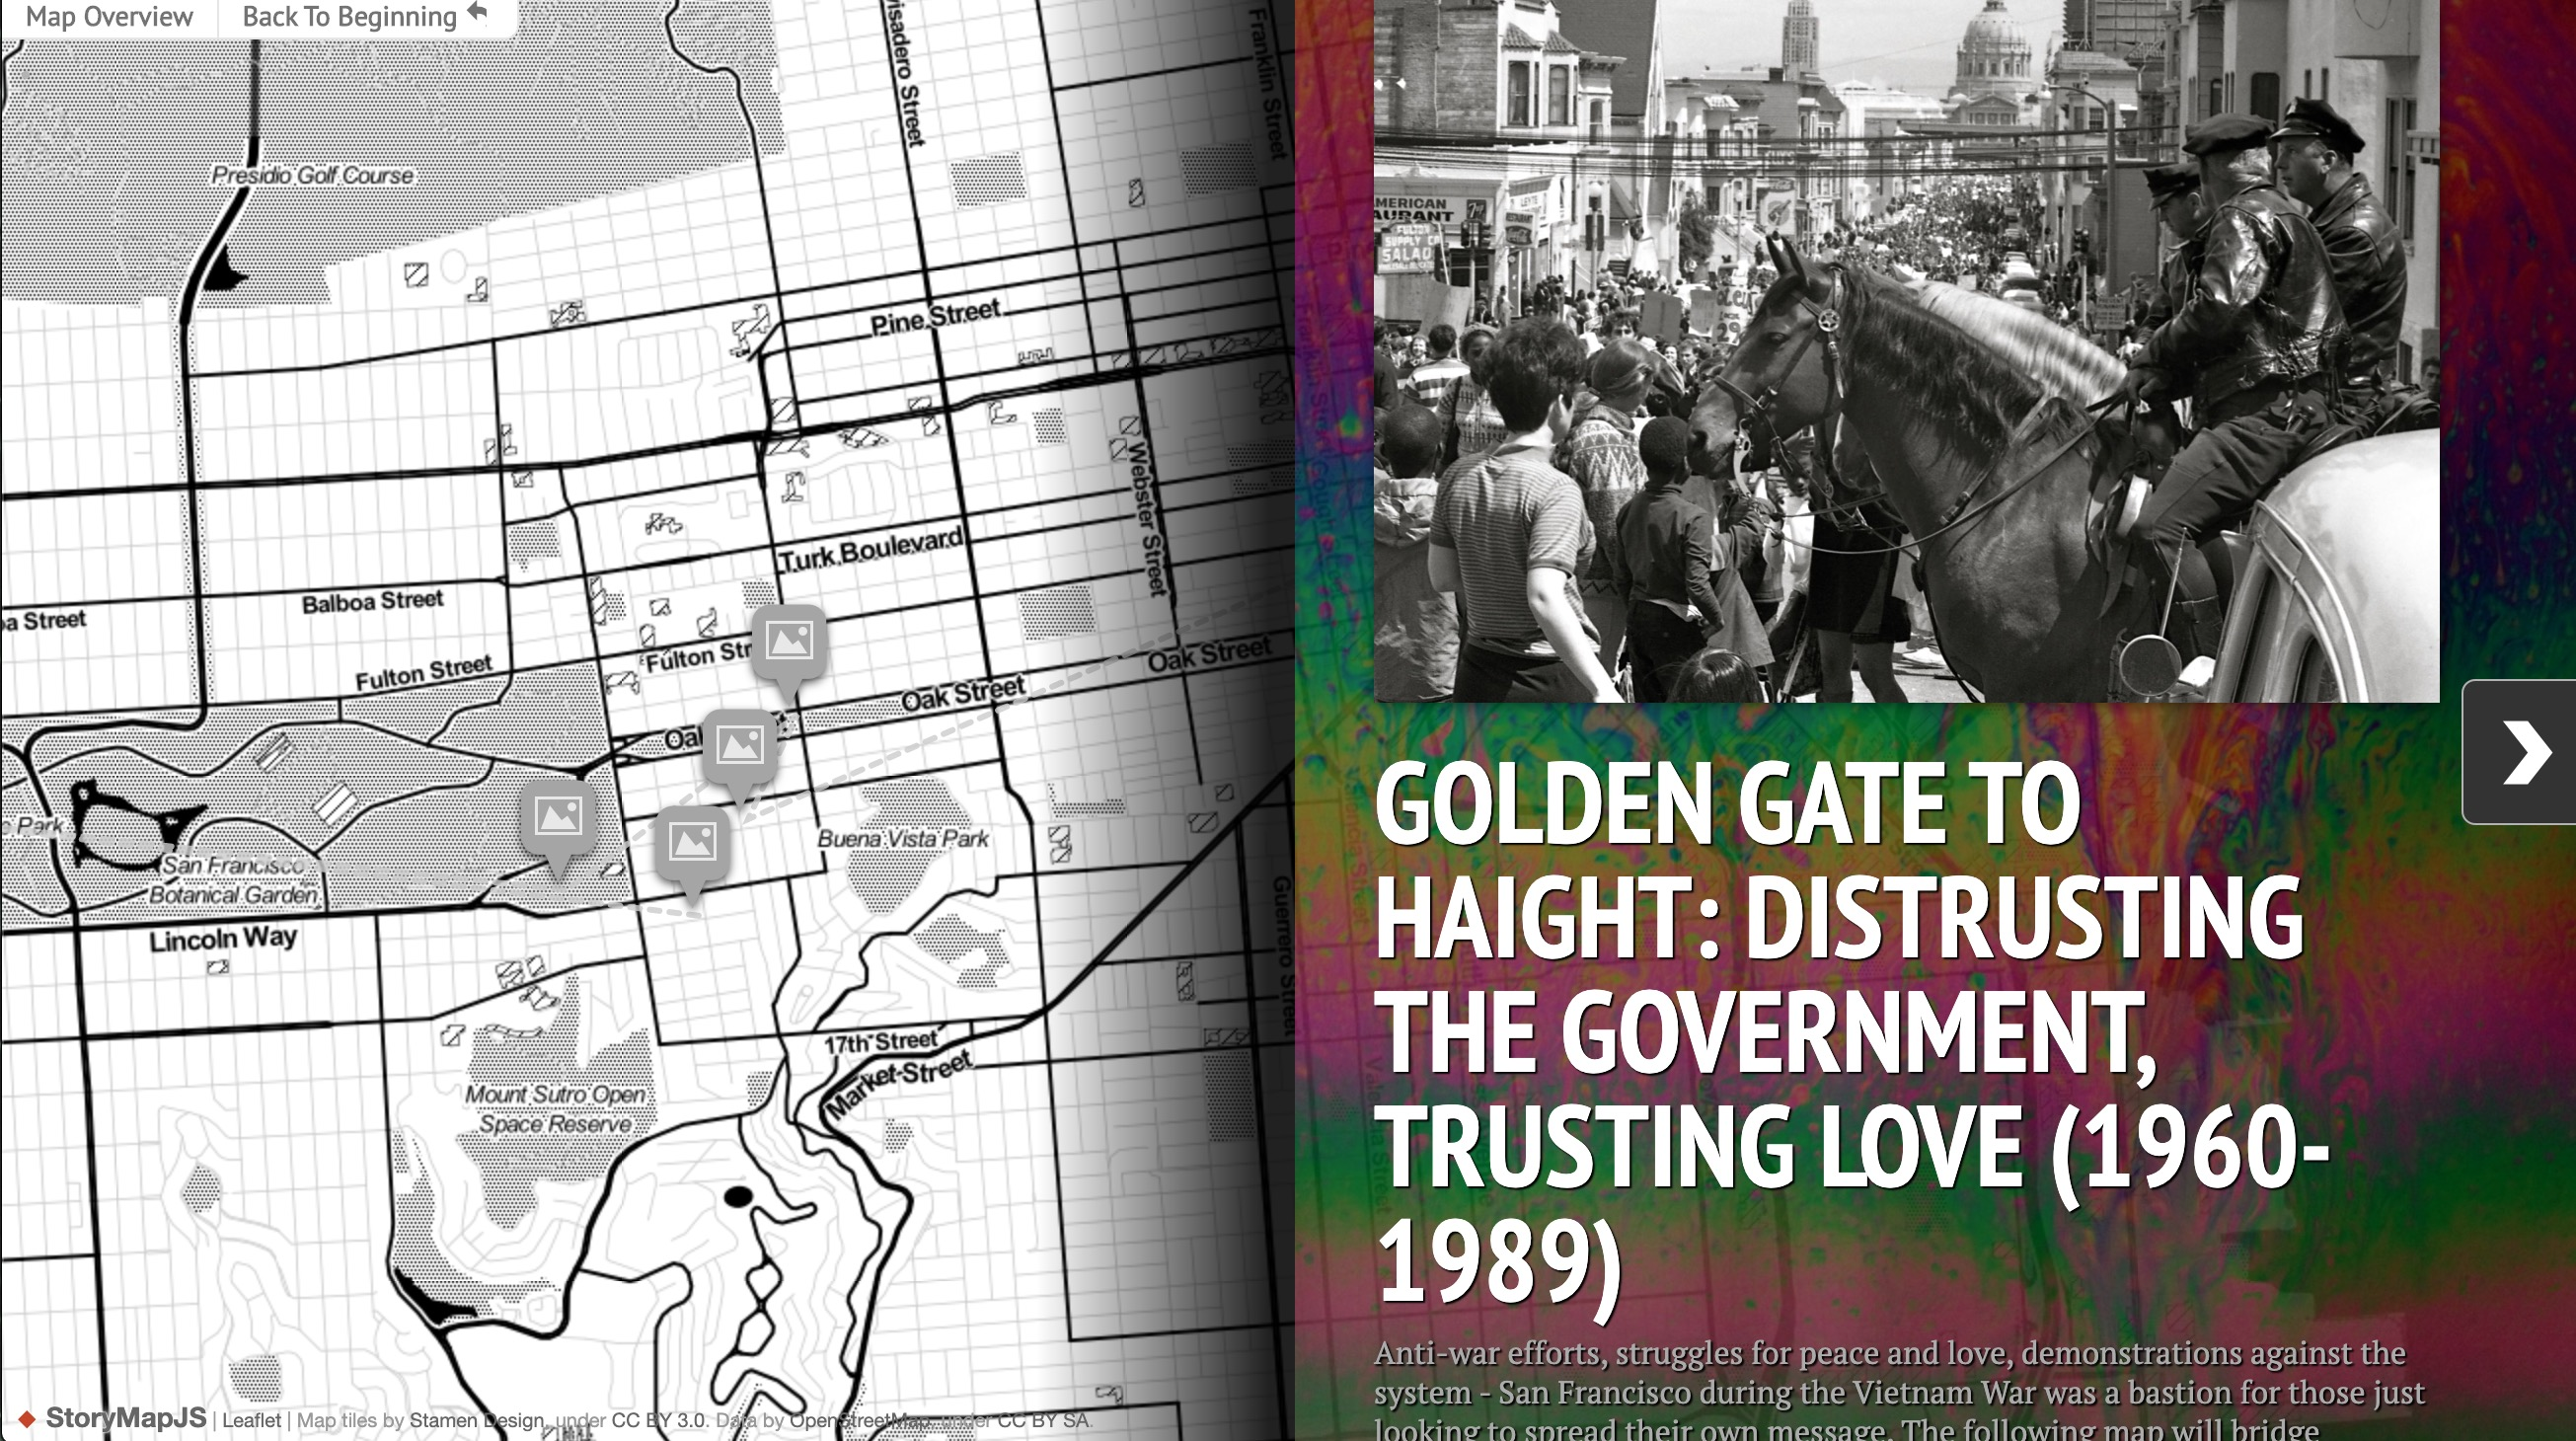 Screenshot of the StoryMapJS Golden Gate to Haight: Distrusting the Government, Trusting Love (1960-1989)